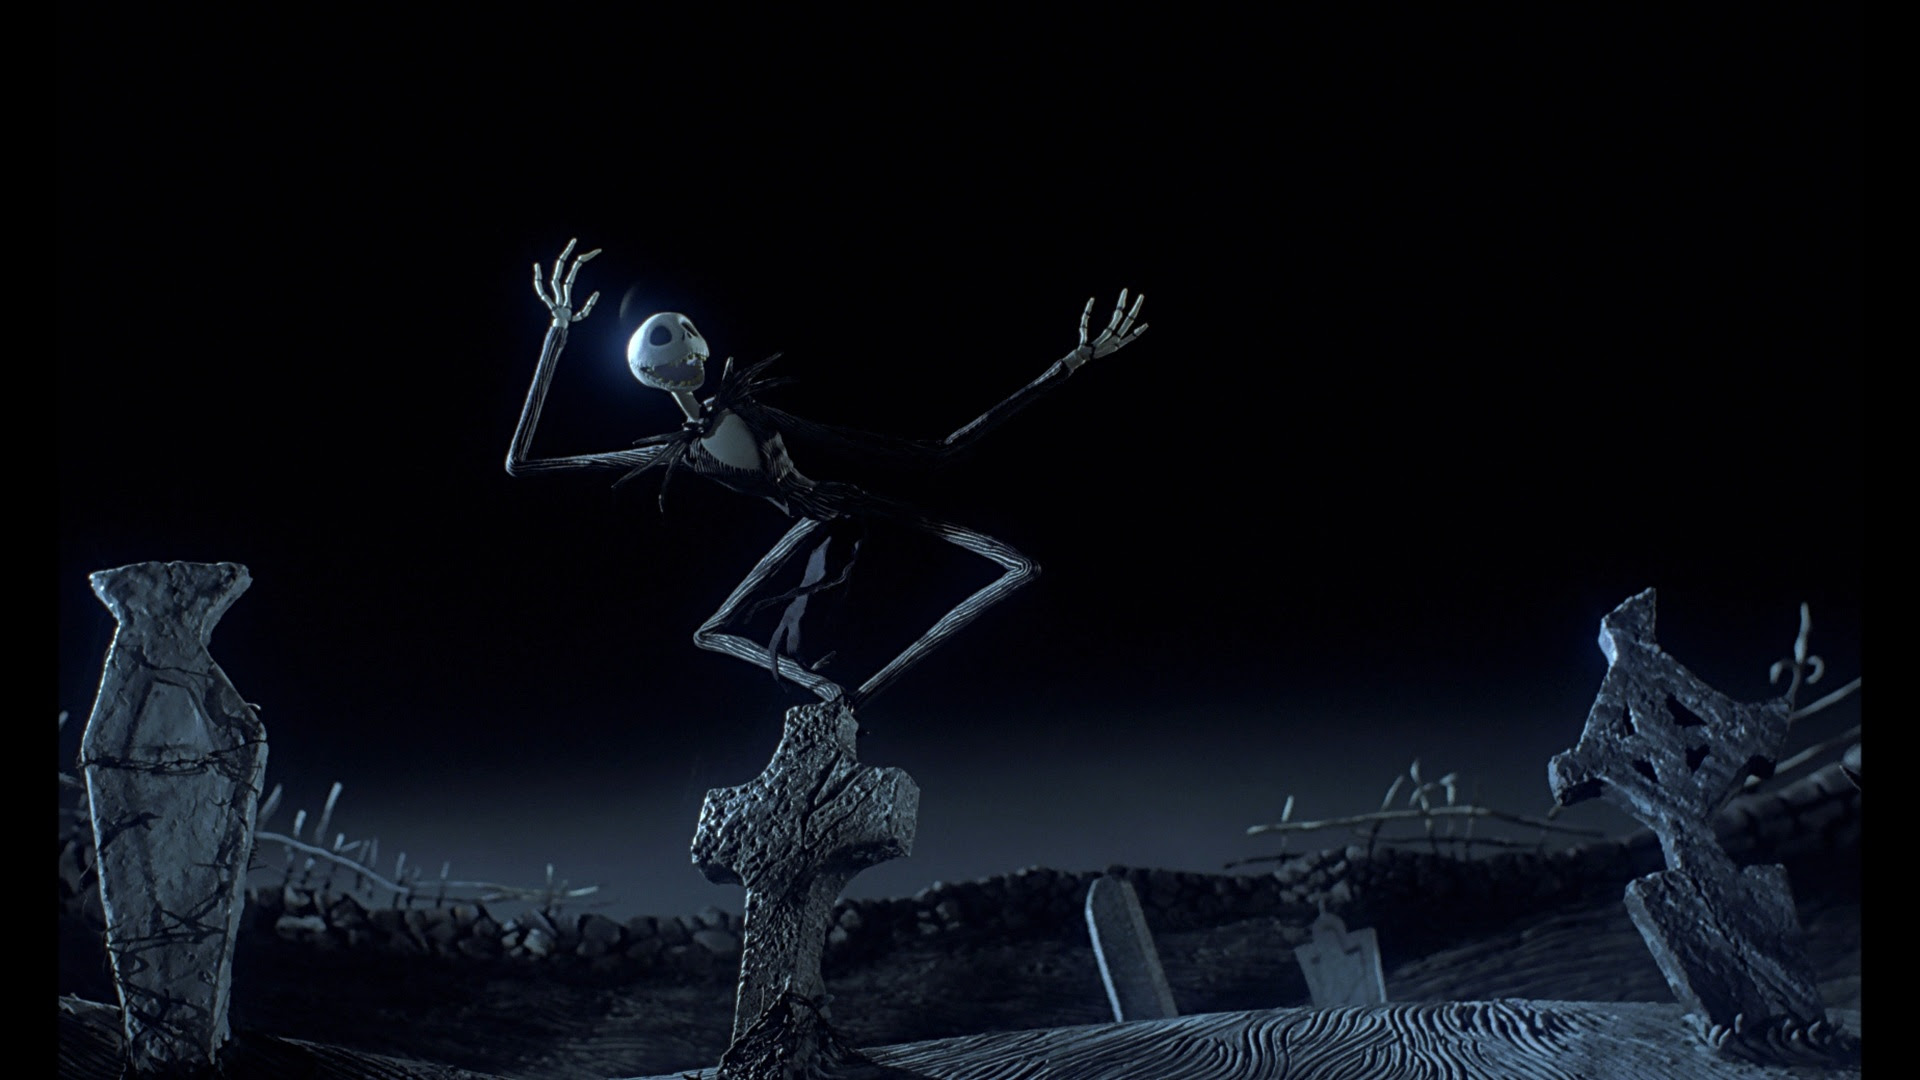 1920x1080 The Nightmare Before Christmas Character Desktop Pc And